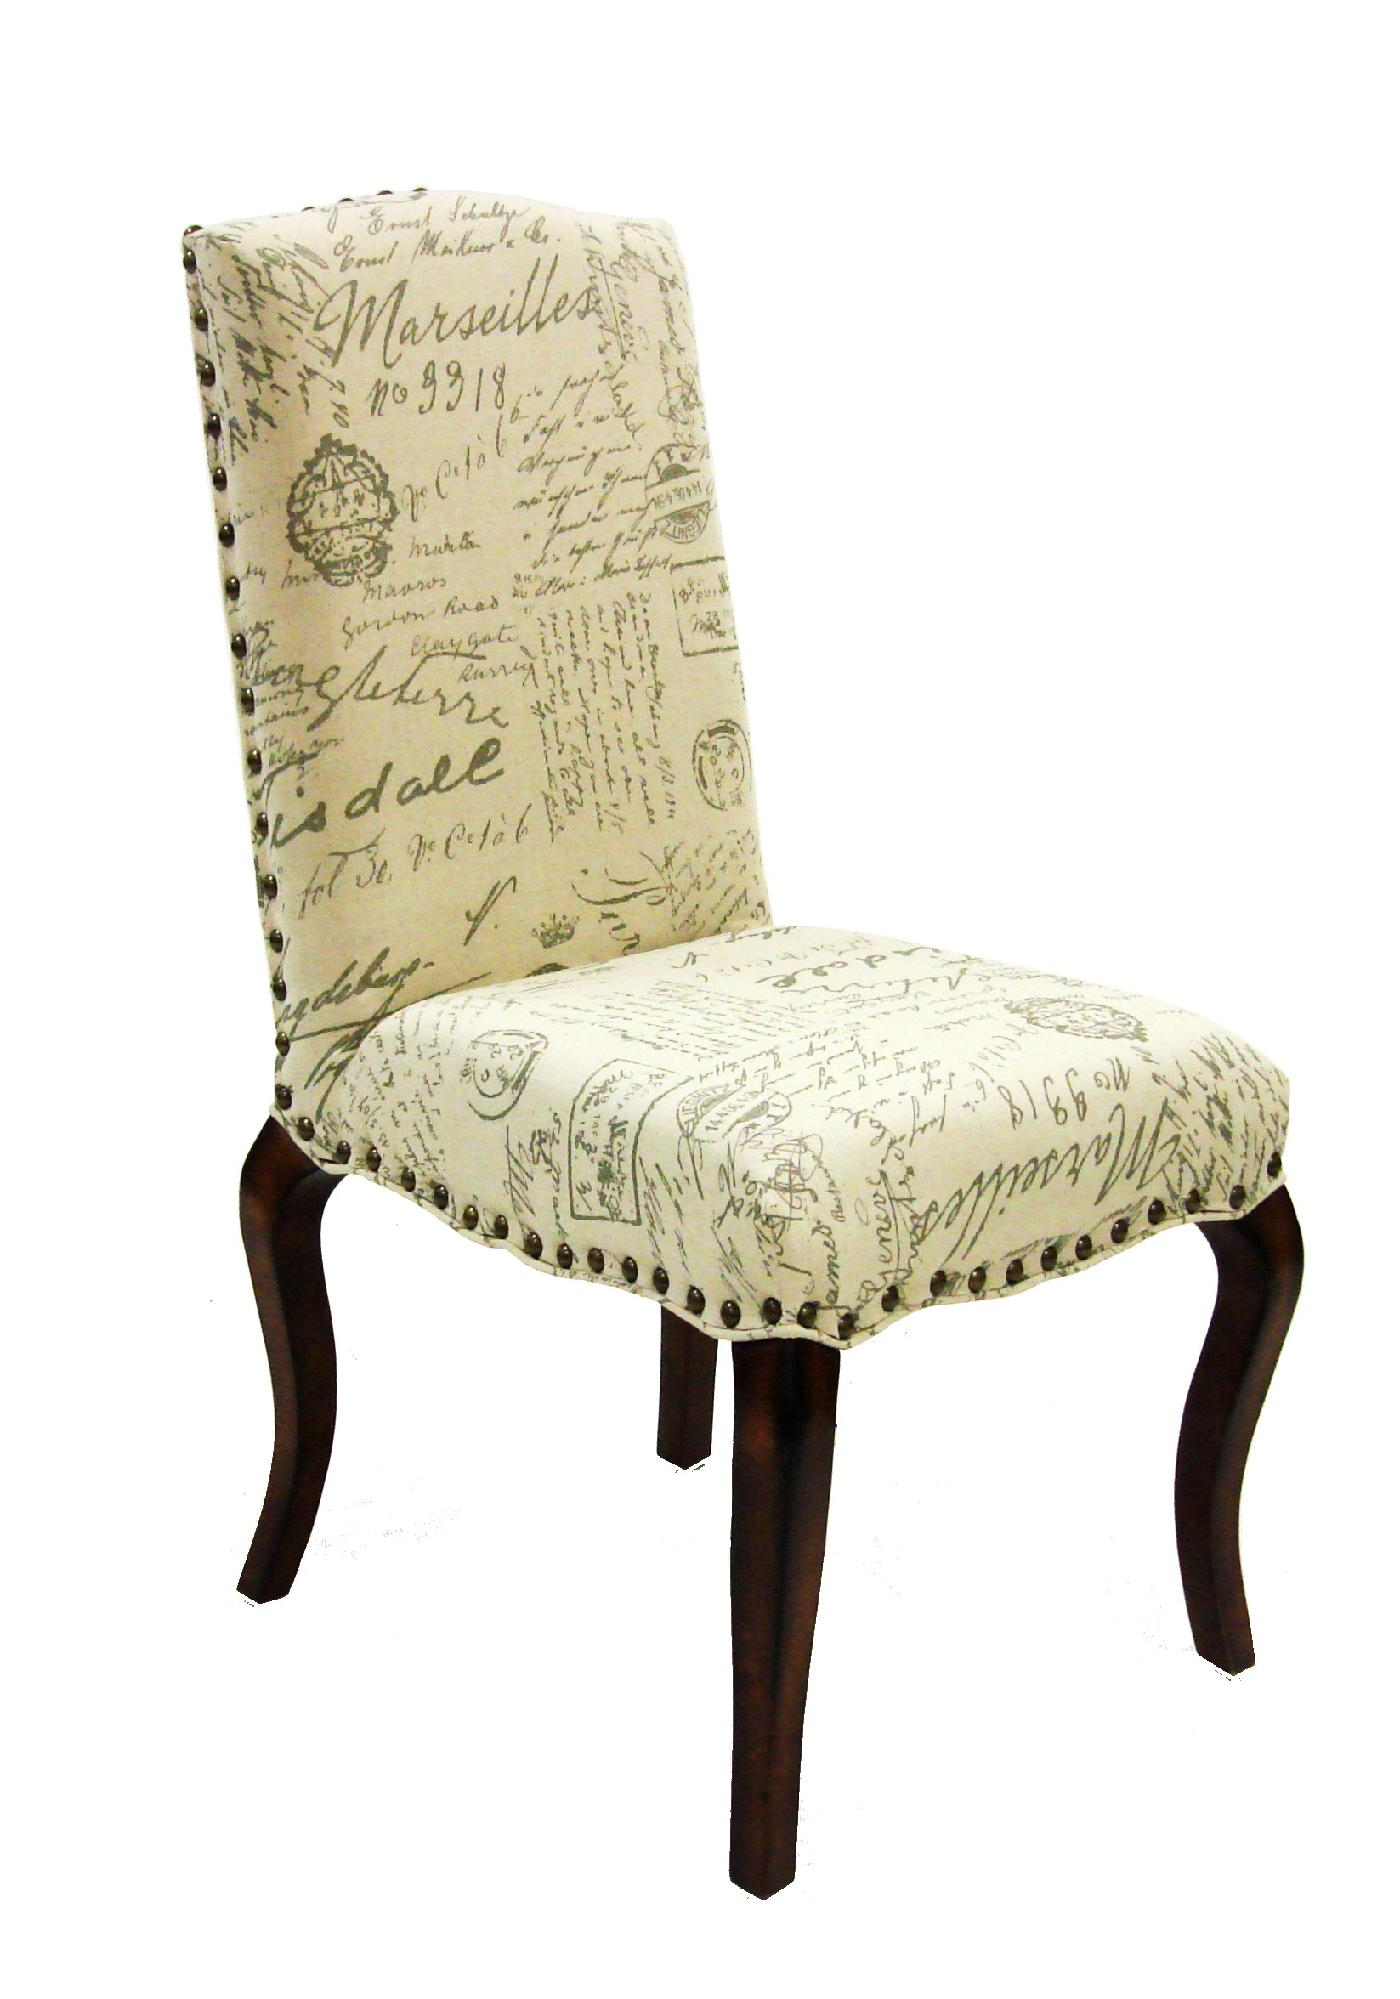 French Script Chair Armen Madeleine 3161 Vintage French Fabric Script Chair